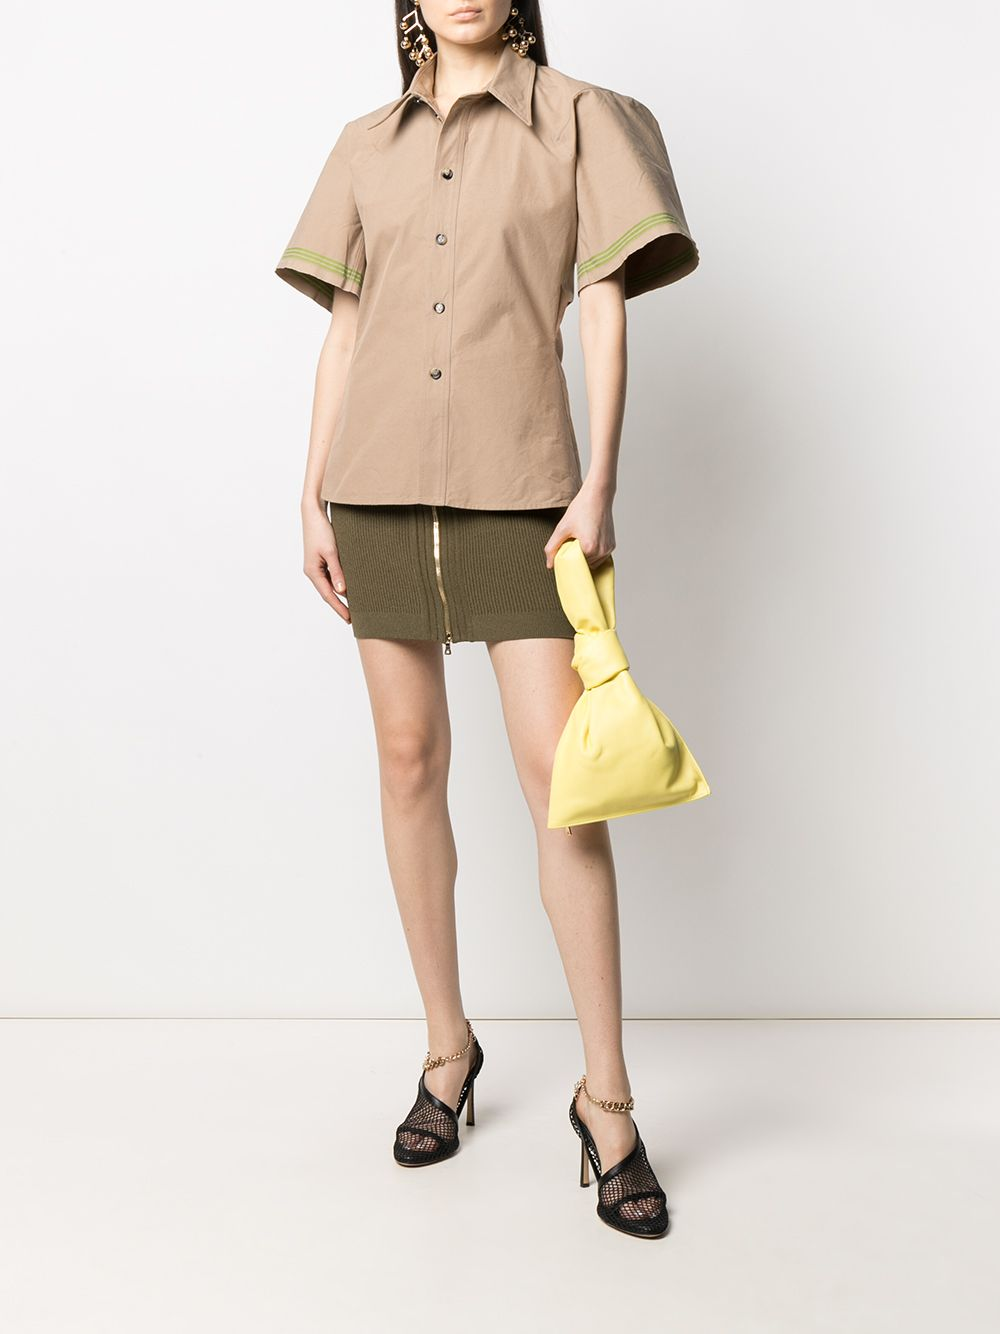 Beige and green cotton button-up shirt  BOTTEGA VENETA |  | 648139-V0BV09747